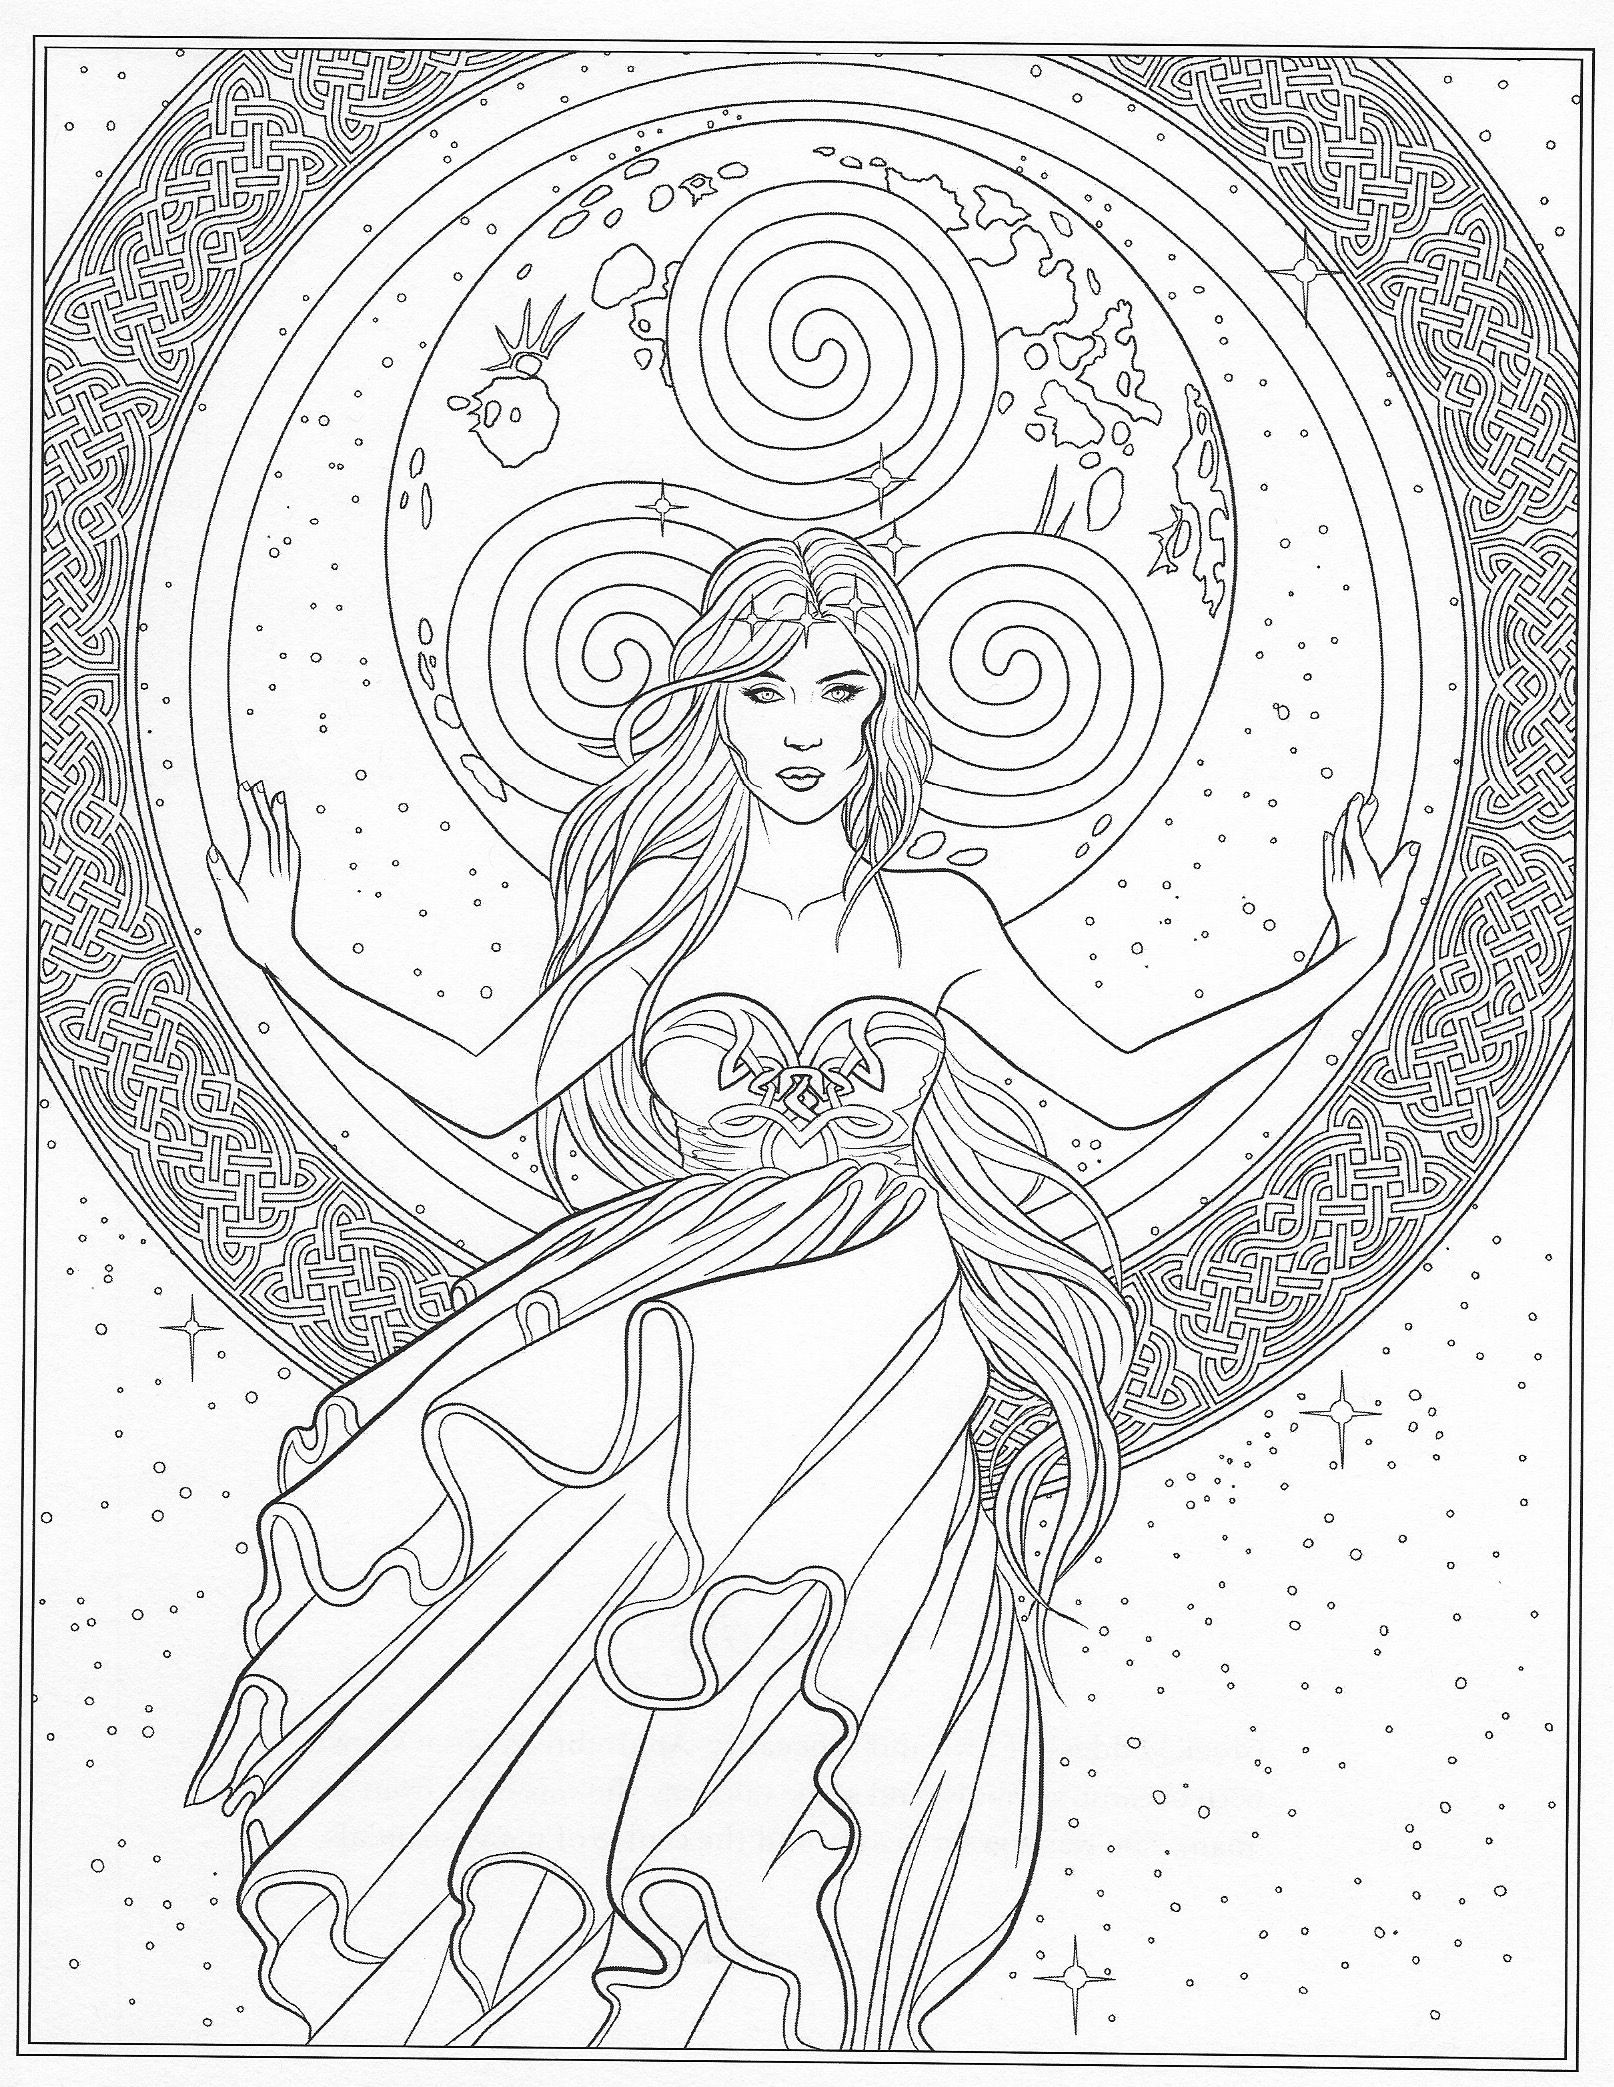 Pin by Val Wilson on Coloring pages | Pinterest | Adult coloring ...